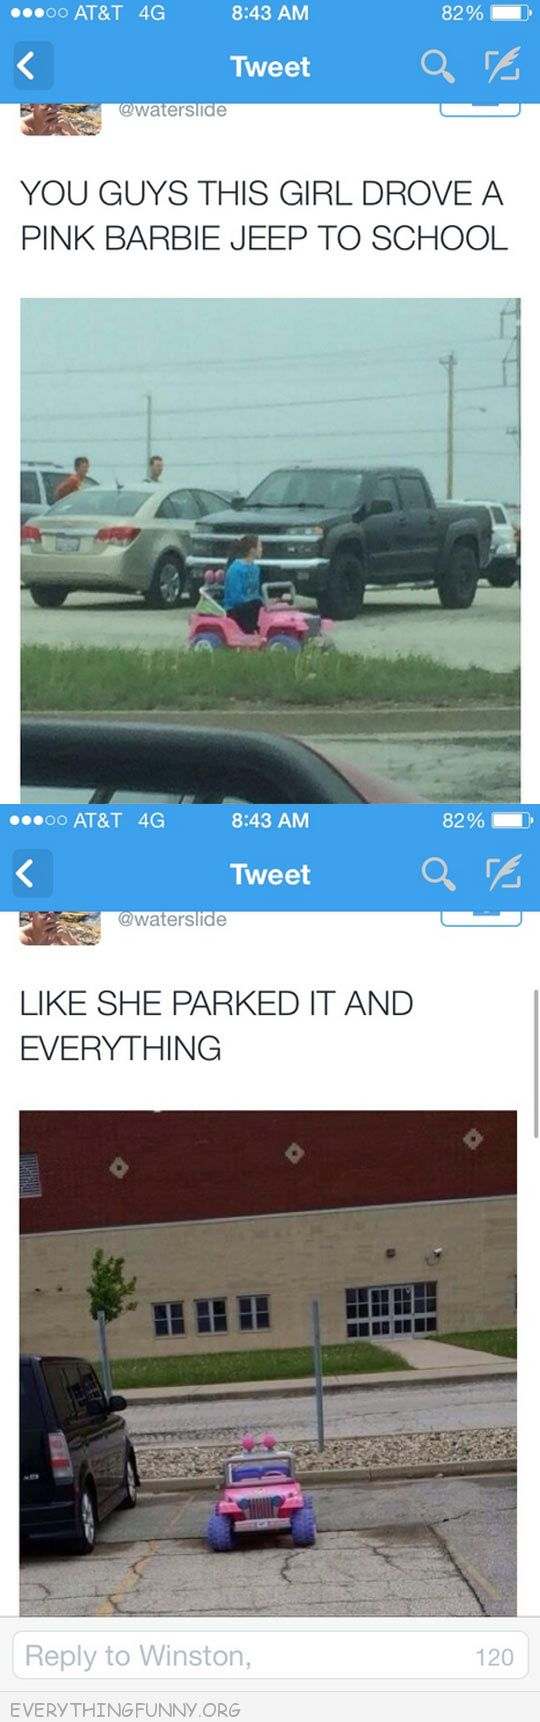 funny twitter girl drives childs car to school and parks it